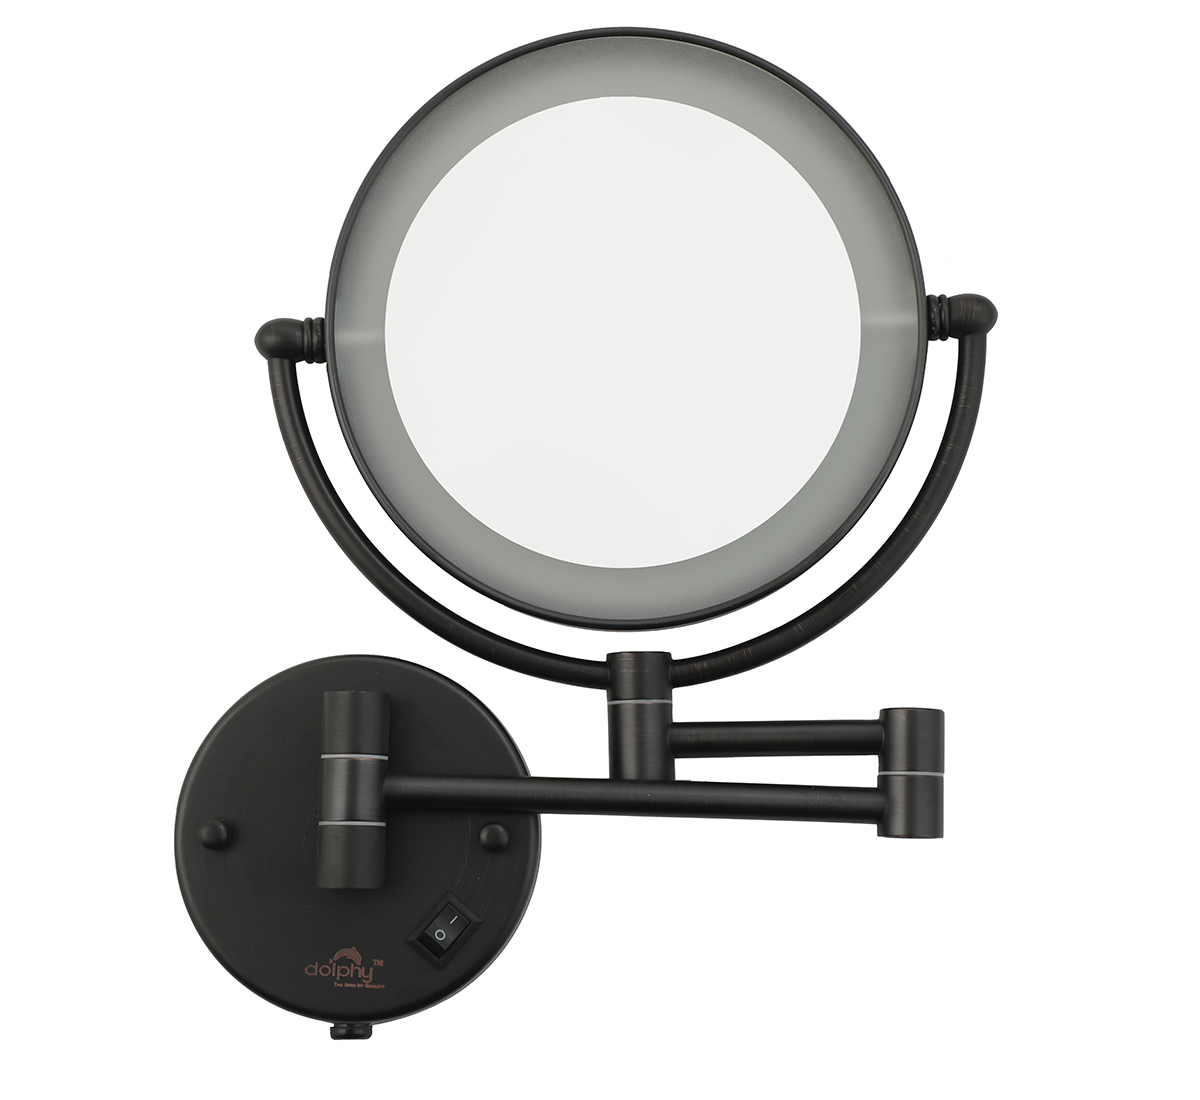 LED 5x Magnifying Mirror